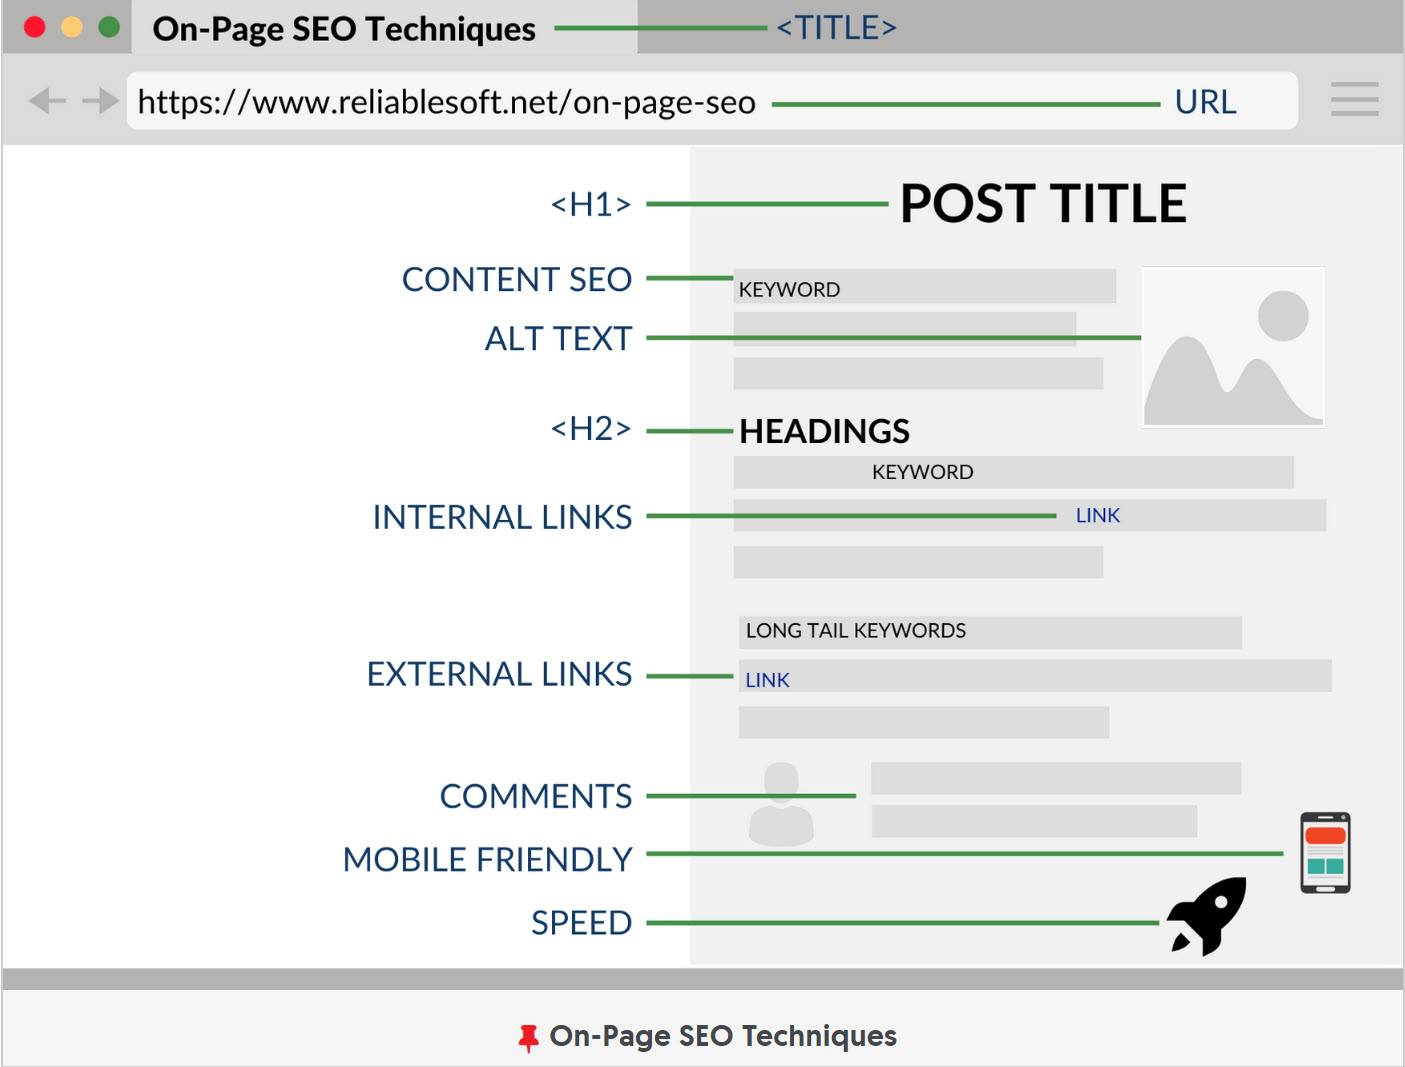 measuring marketing effectiveness of blog SEO - performance